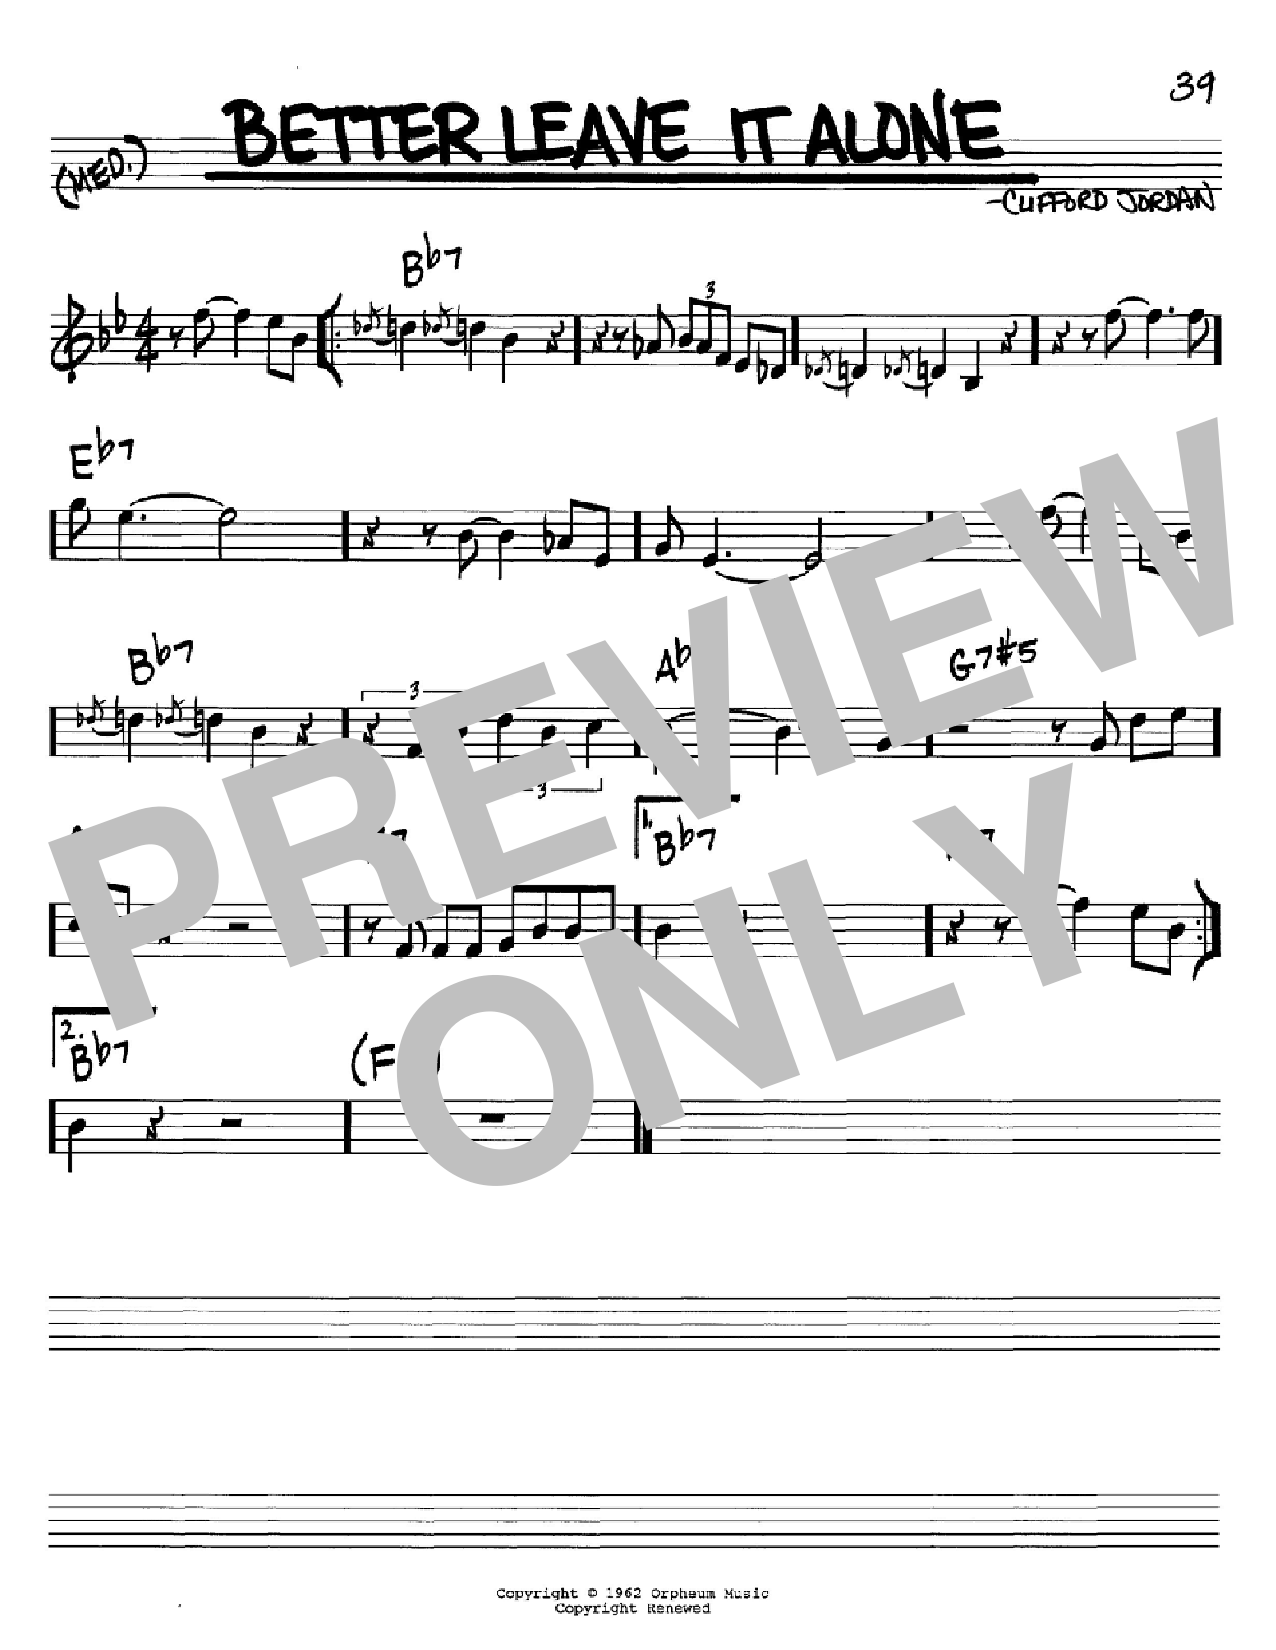 Better Leave It Alone Sheet Music